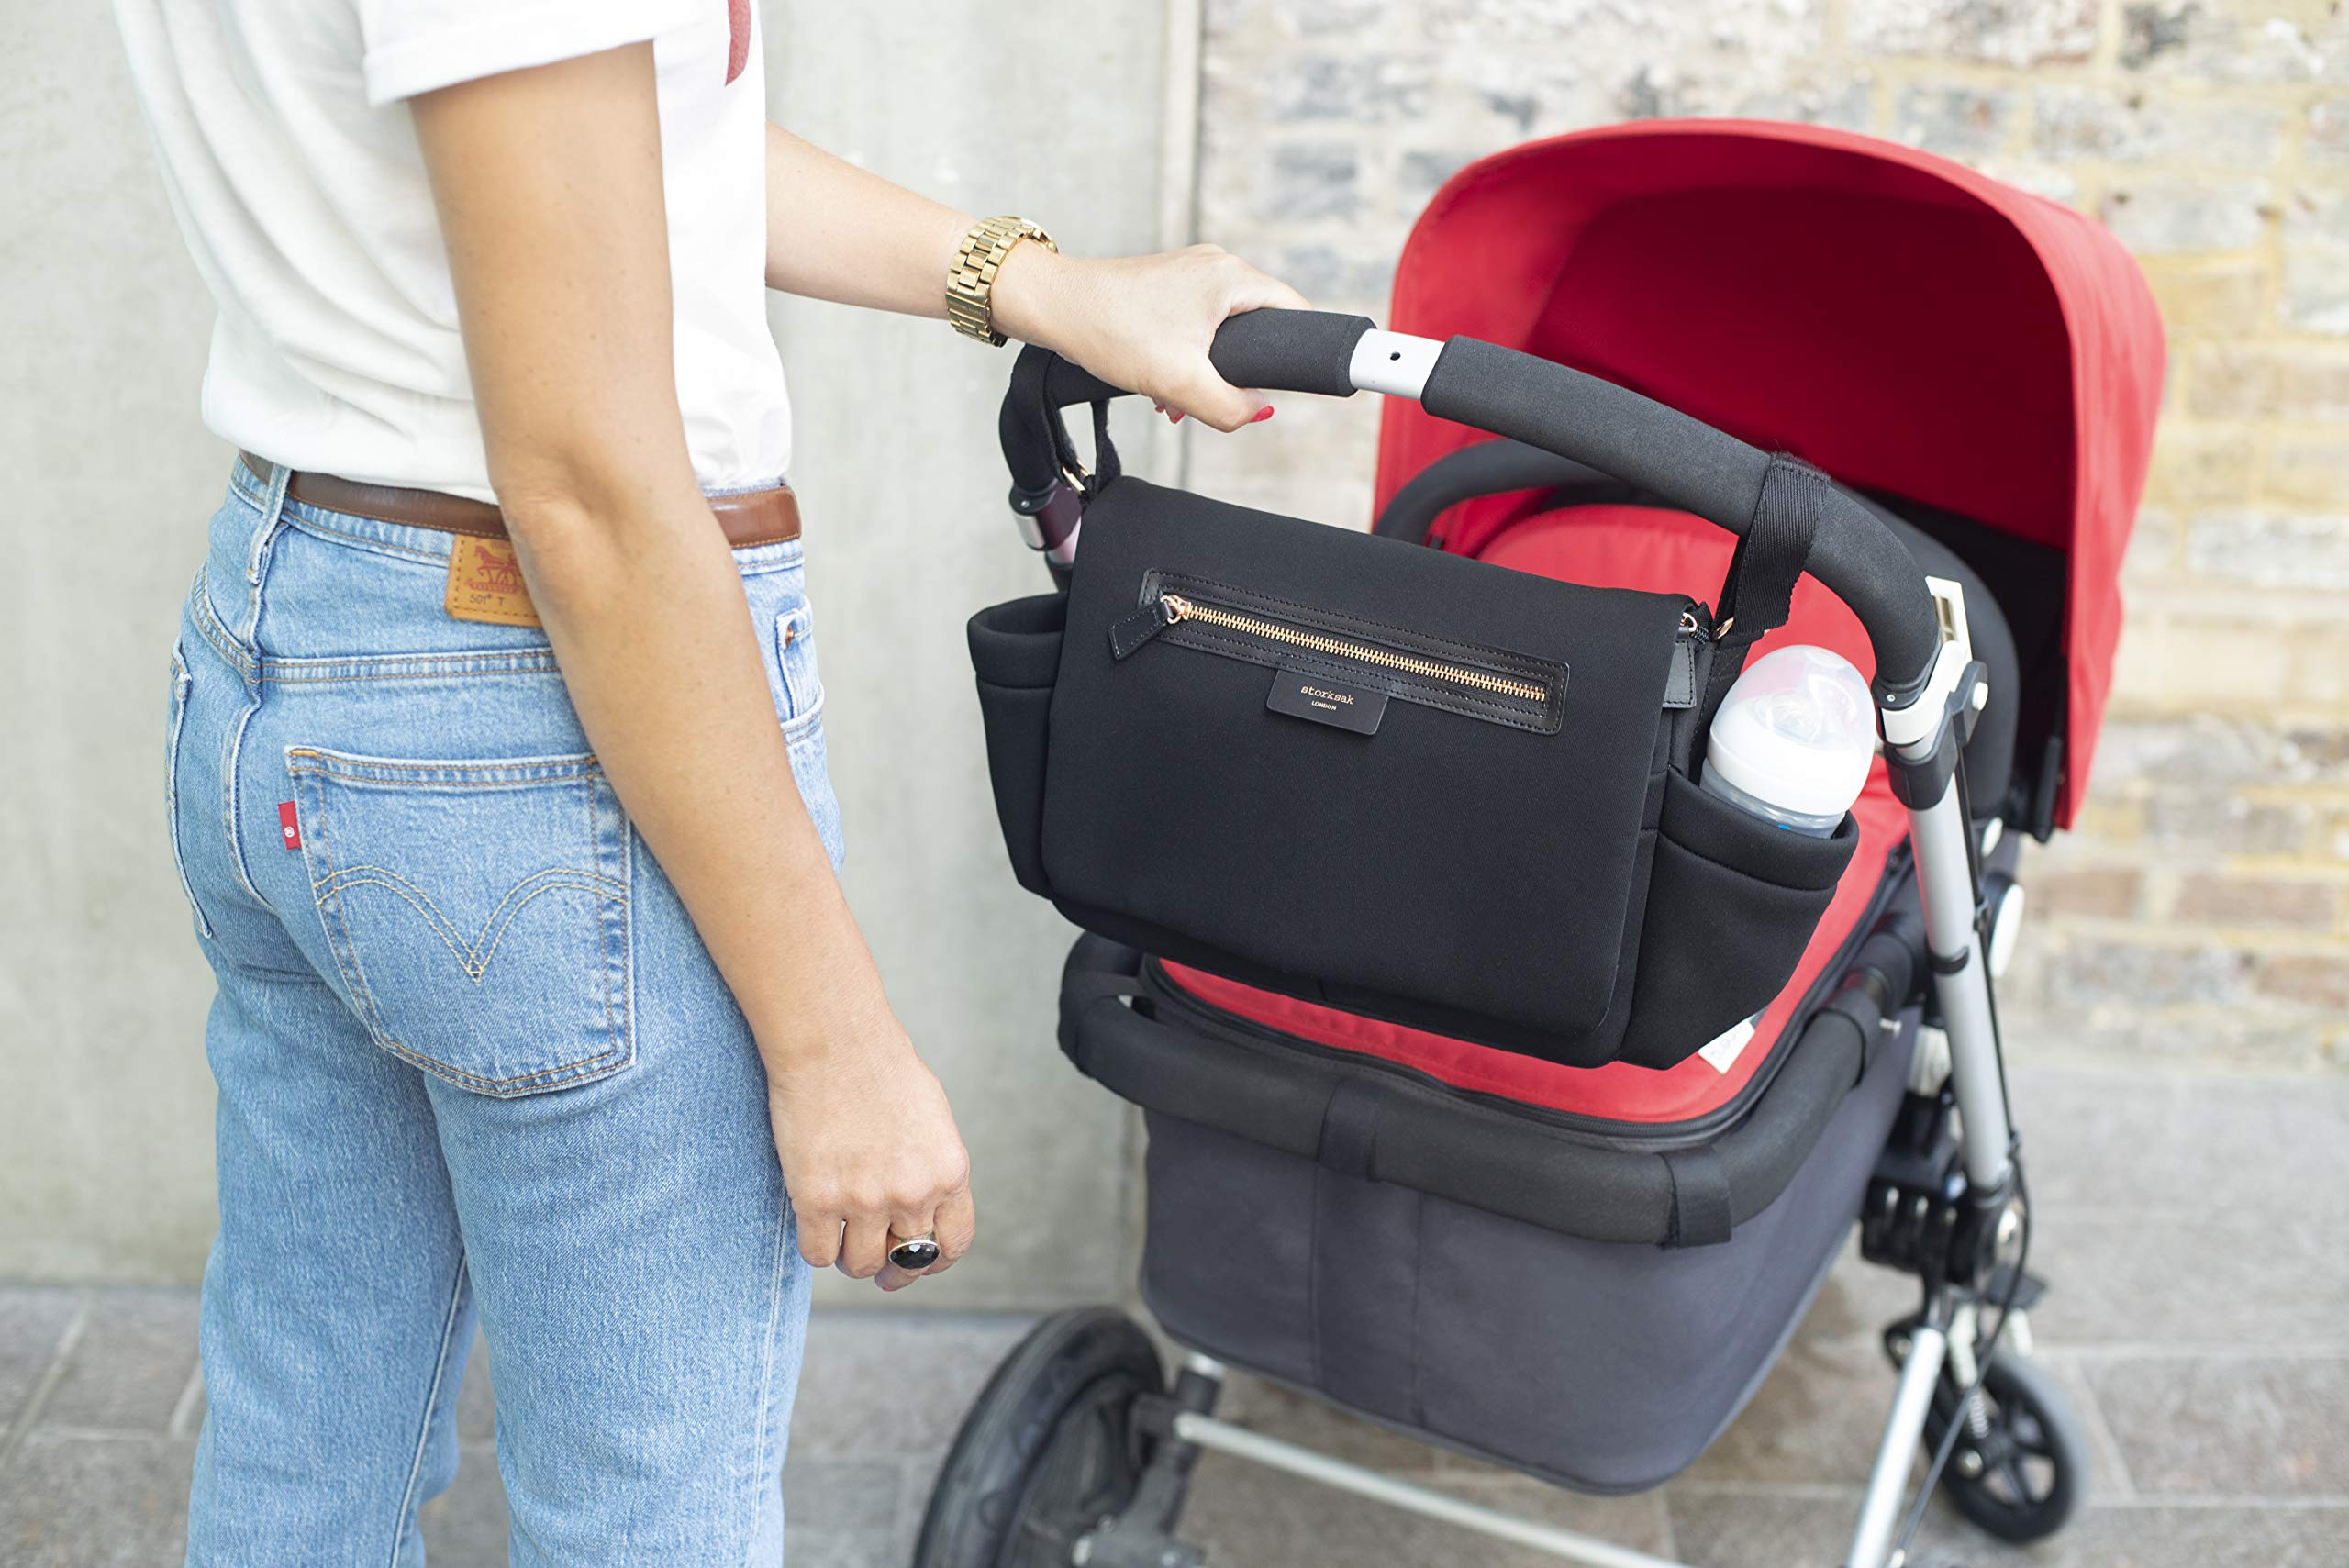 Black Travel Stroller Organizer and Hanging Diaper Bag by Storksak | Universal Fit, Large Storage Capacity, Baby Caddy with Elastic Cup Holder and Integrated Accessories by Storksak (Image #7)